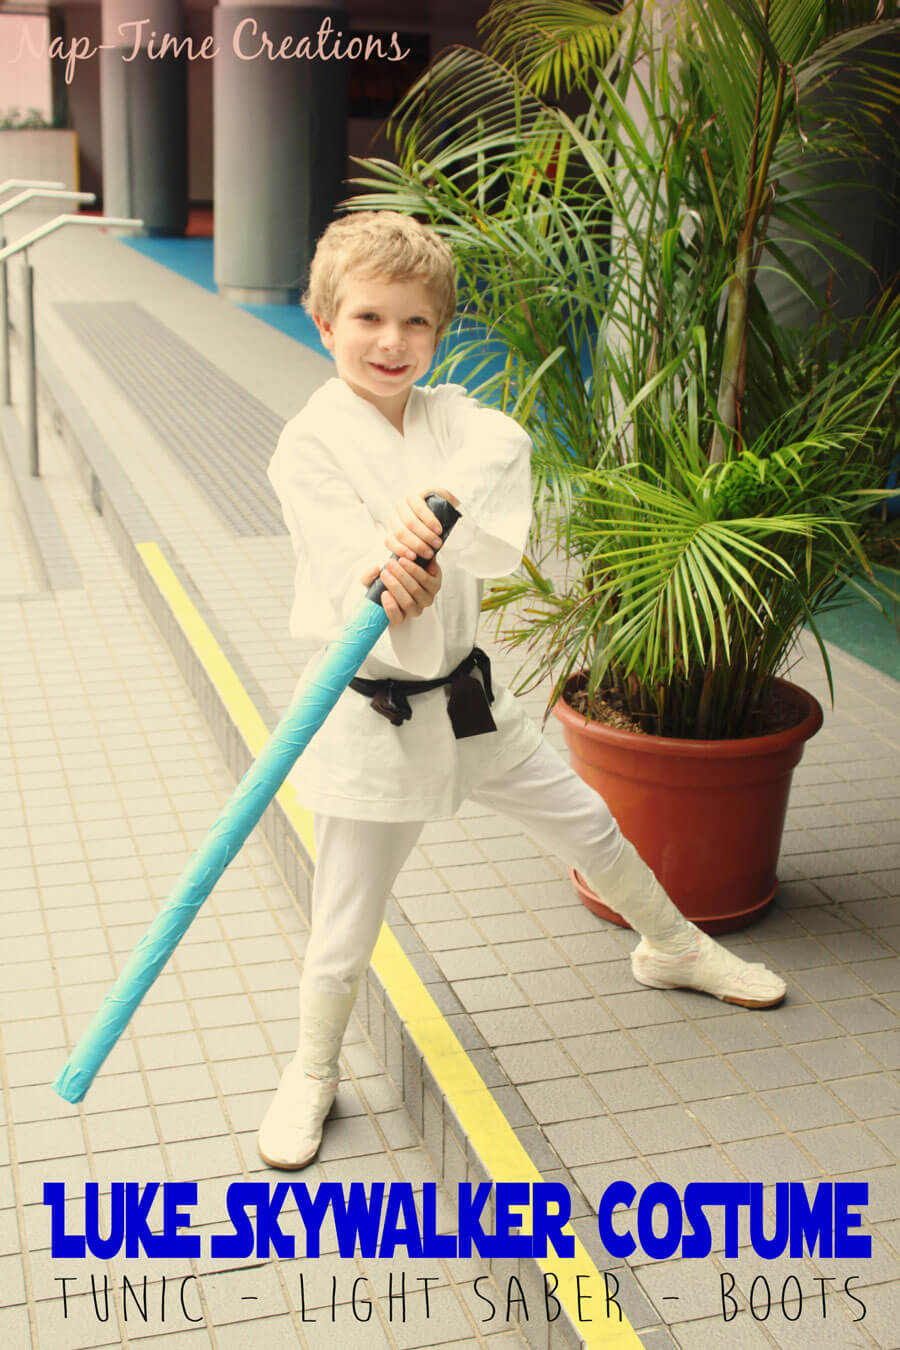 kids-luke-skywalker-costumer-{easy}-Tunic-tutorial,-boots-&-light-Saber-from-Nap-Time-Creations